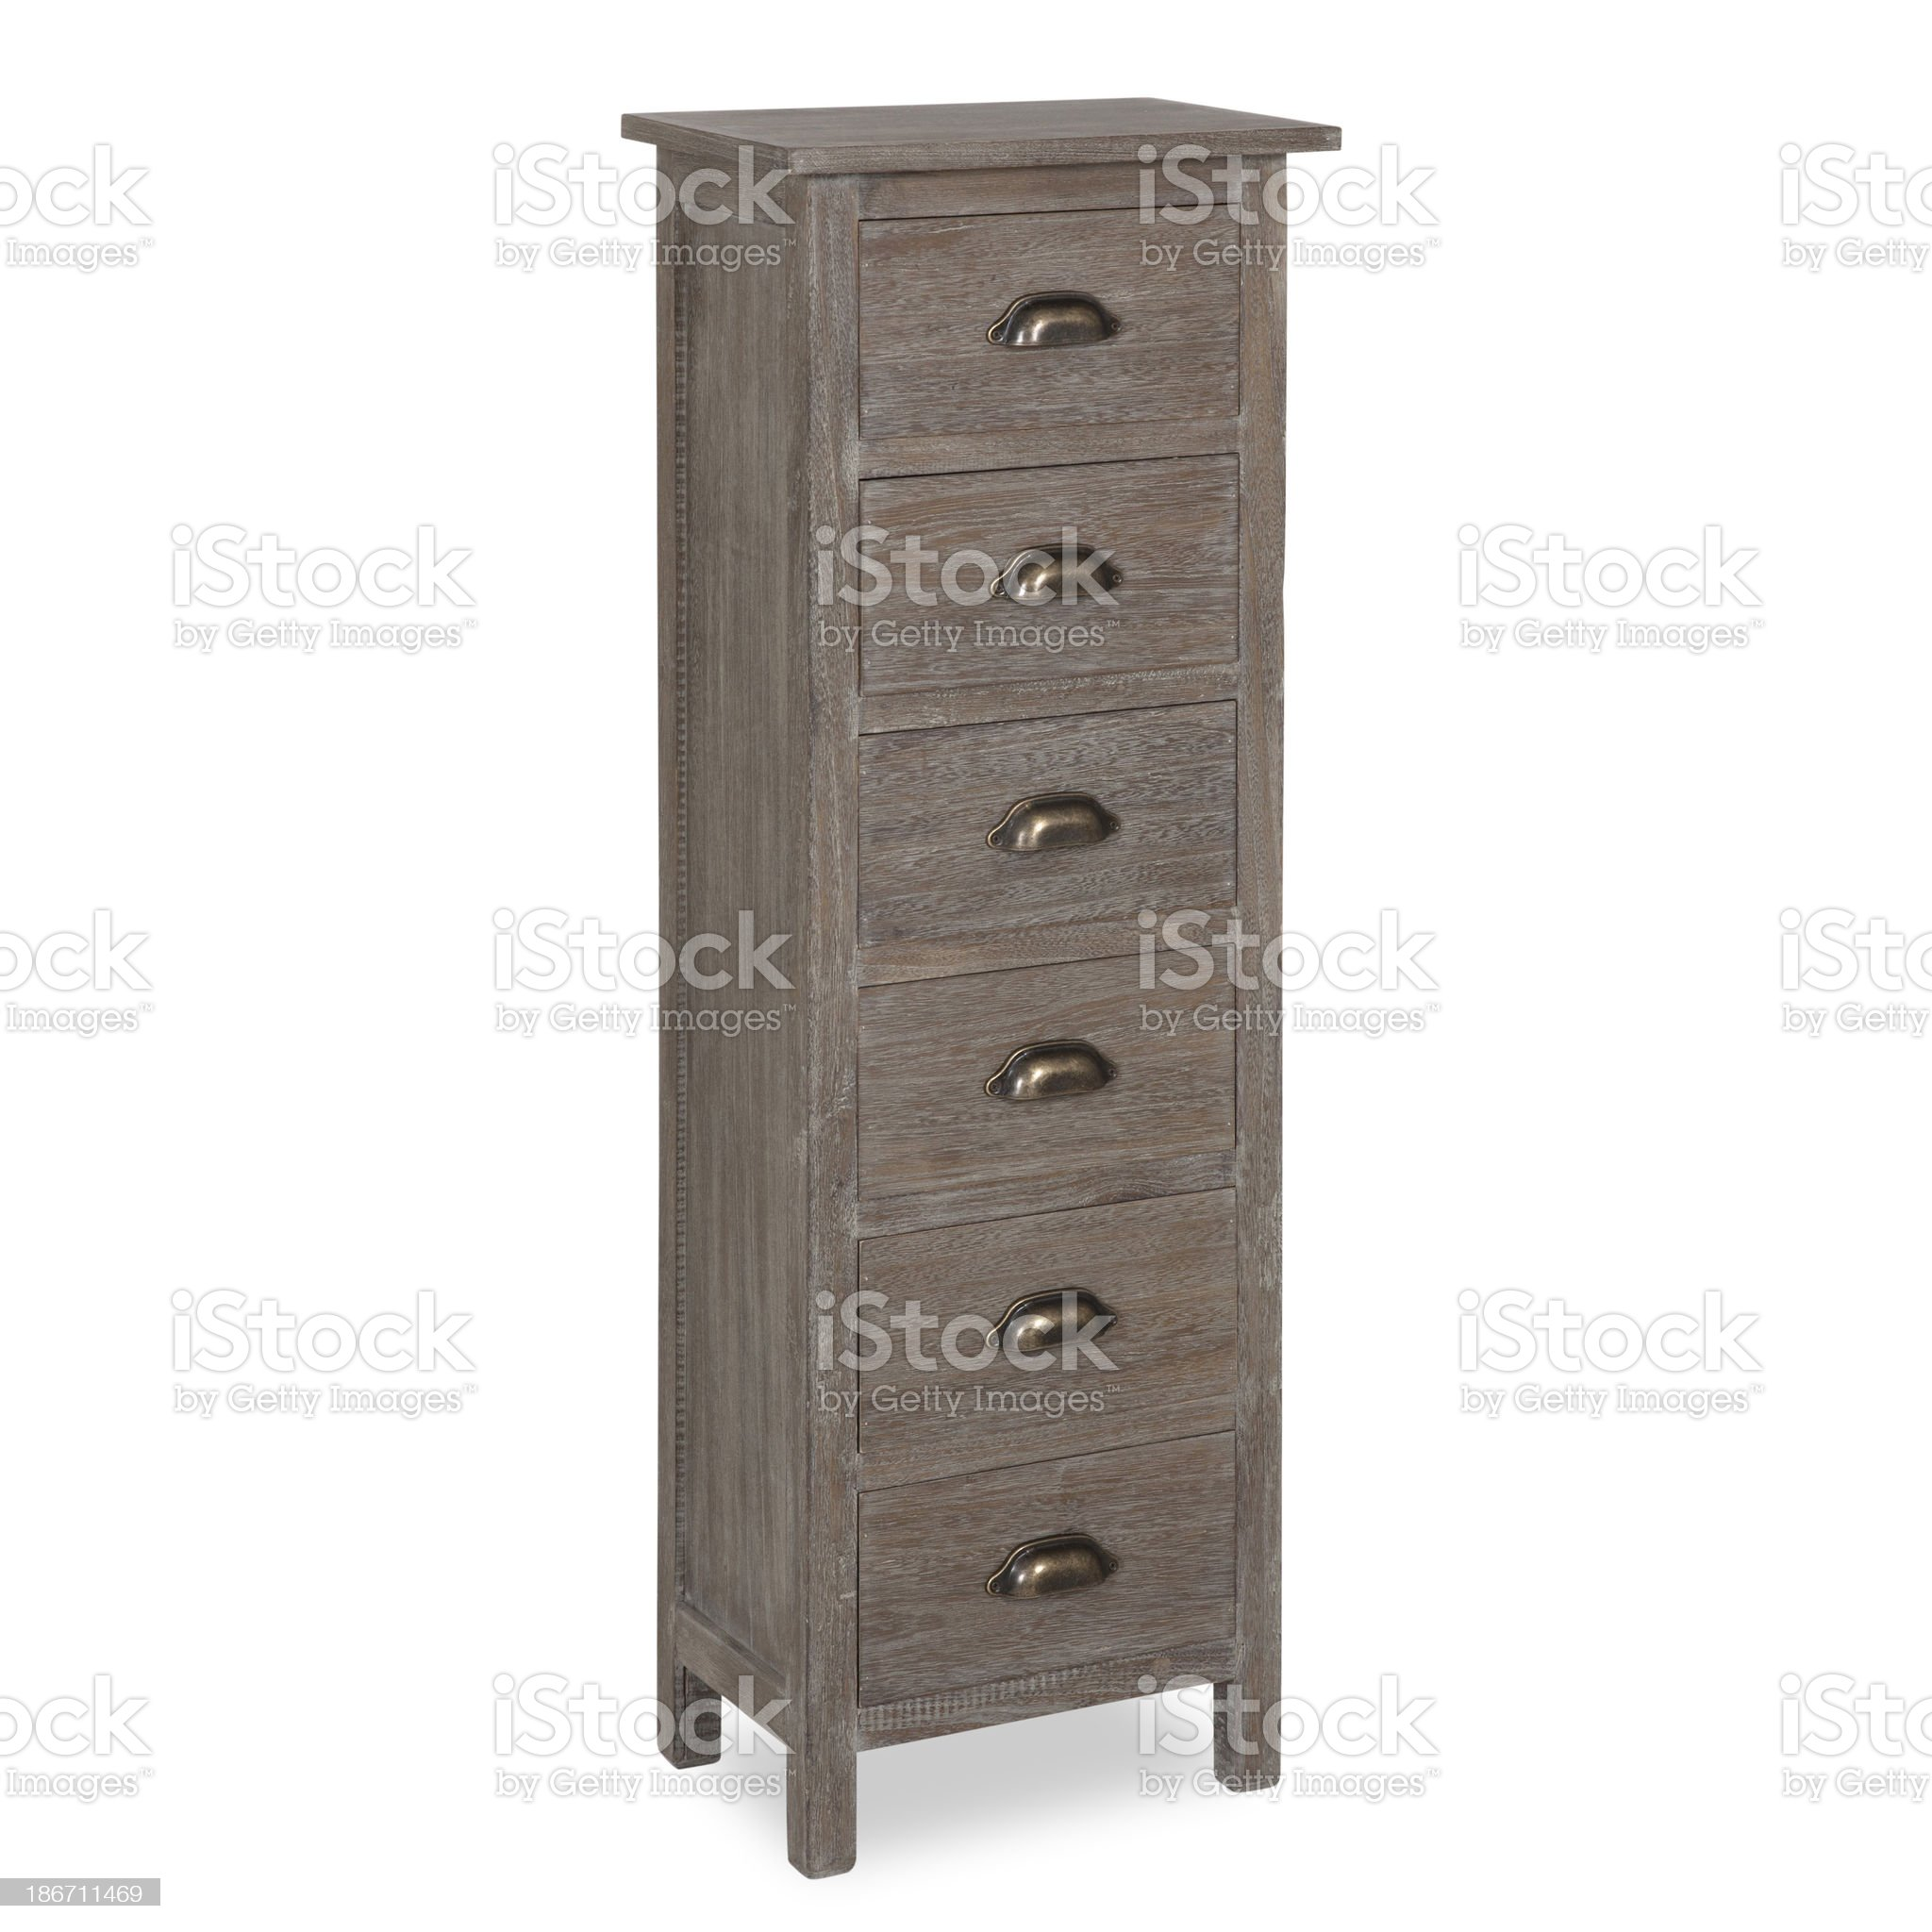 Old Fashion Chest Of Drawers Isolated royalty-free stock photo